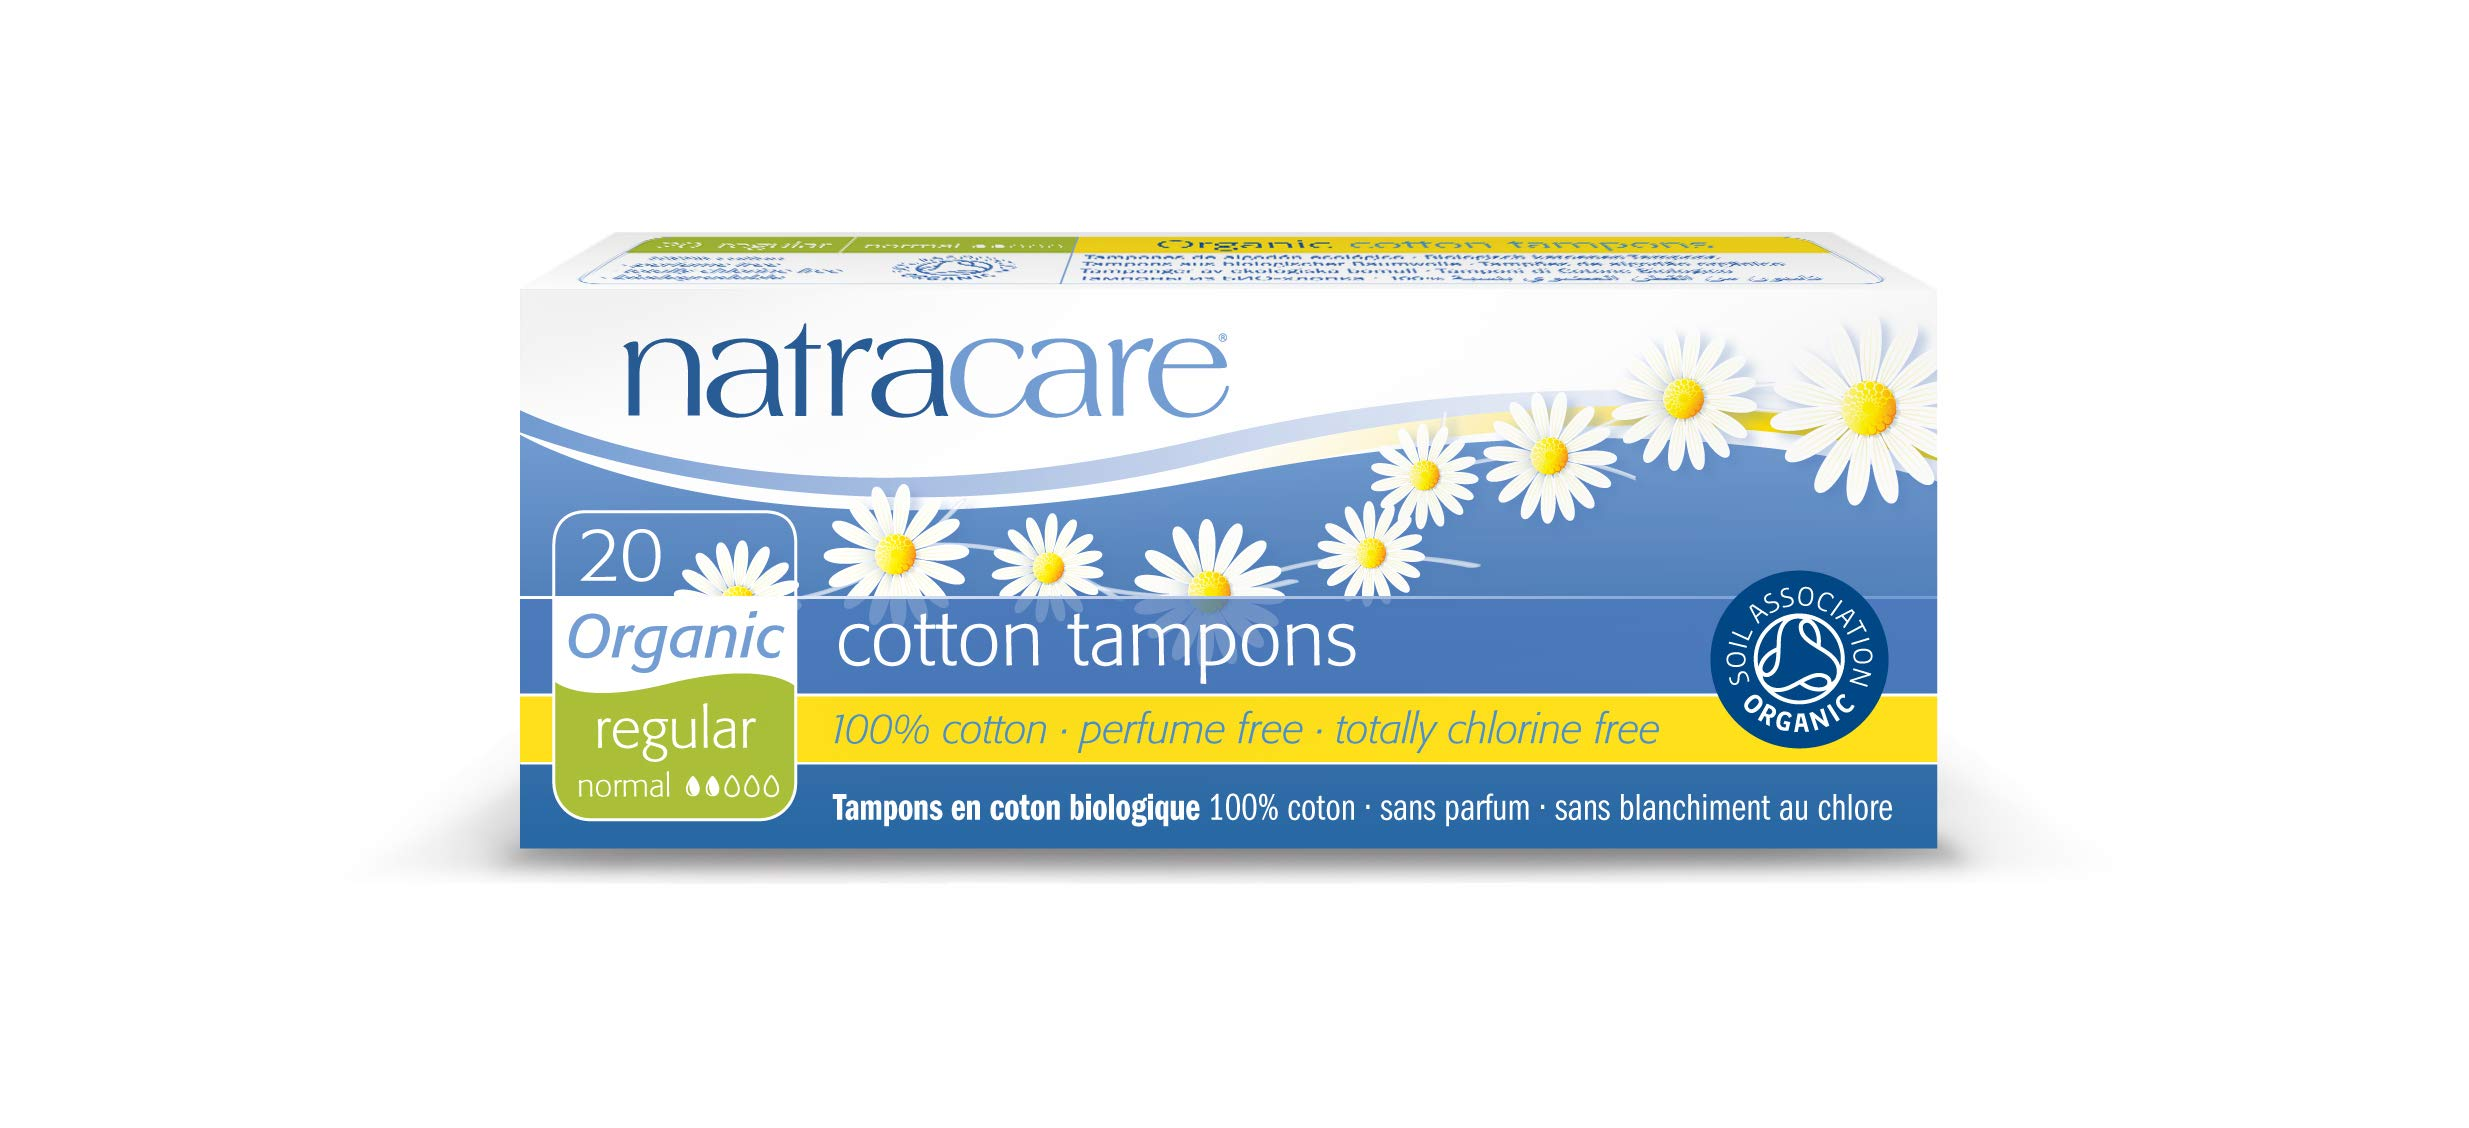 Natracare Organic All Cotton Tampons, Non-Applicator, Regular,  20 Count, Pack of 12 by NATRACARE